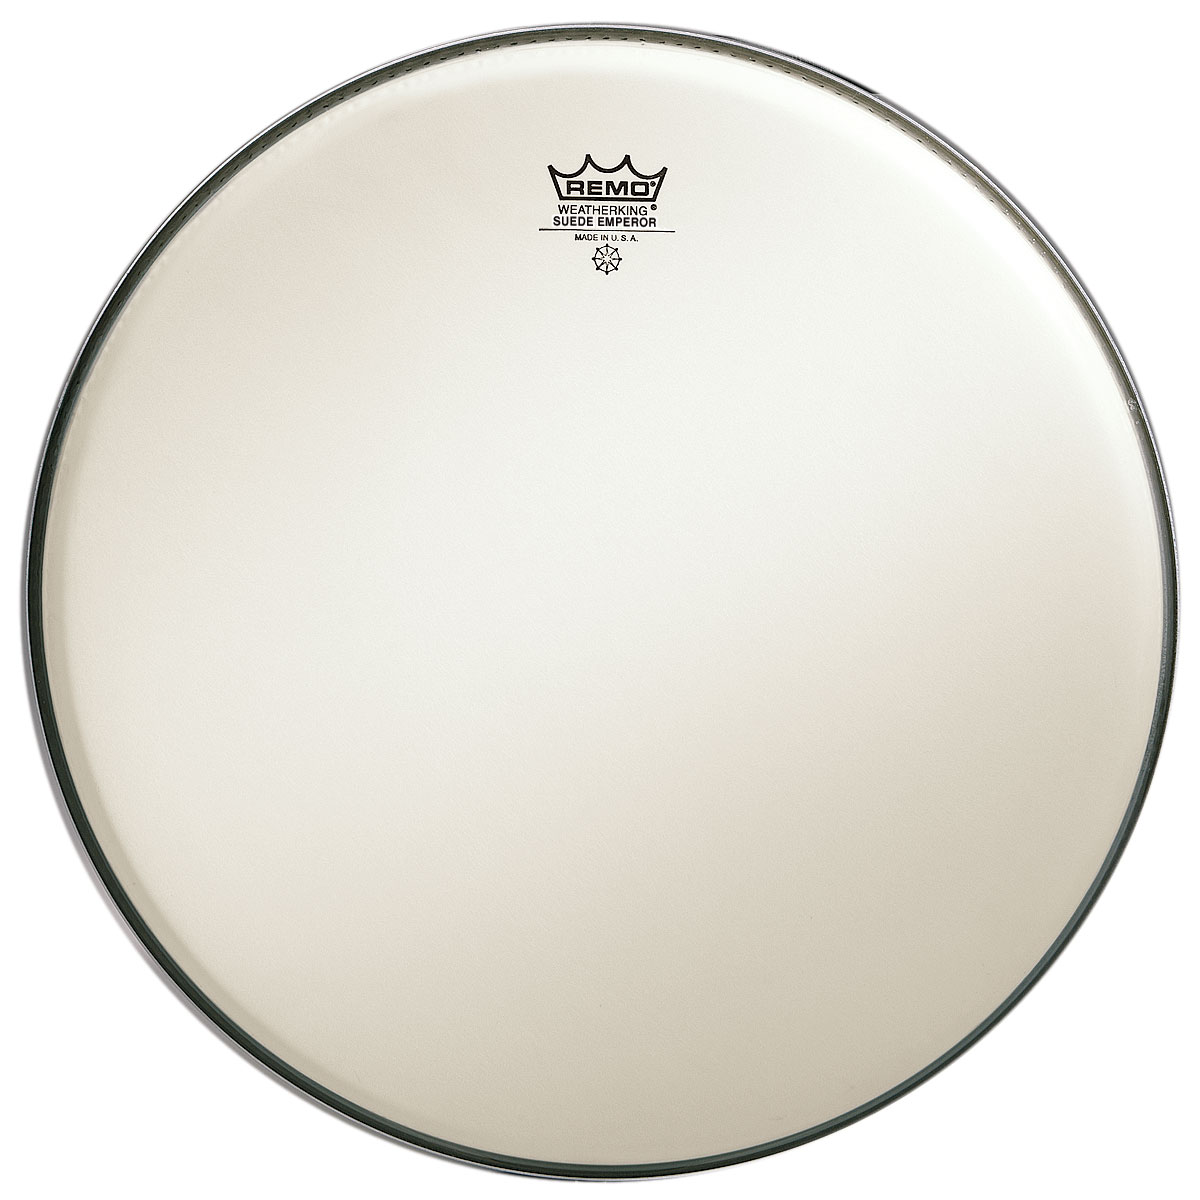 "Remo 20"" Emperor Suede Bass Drum Head"